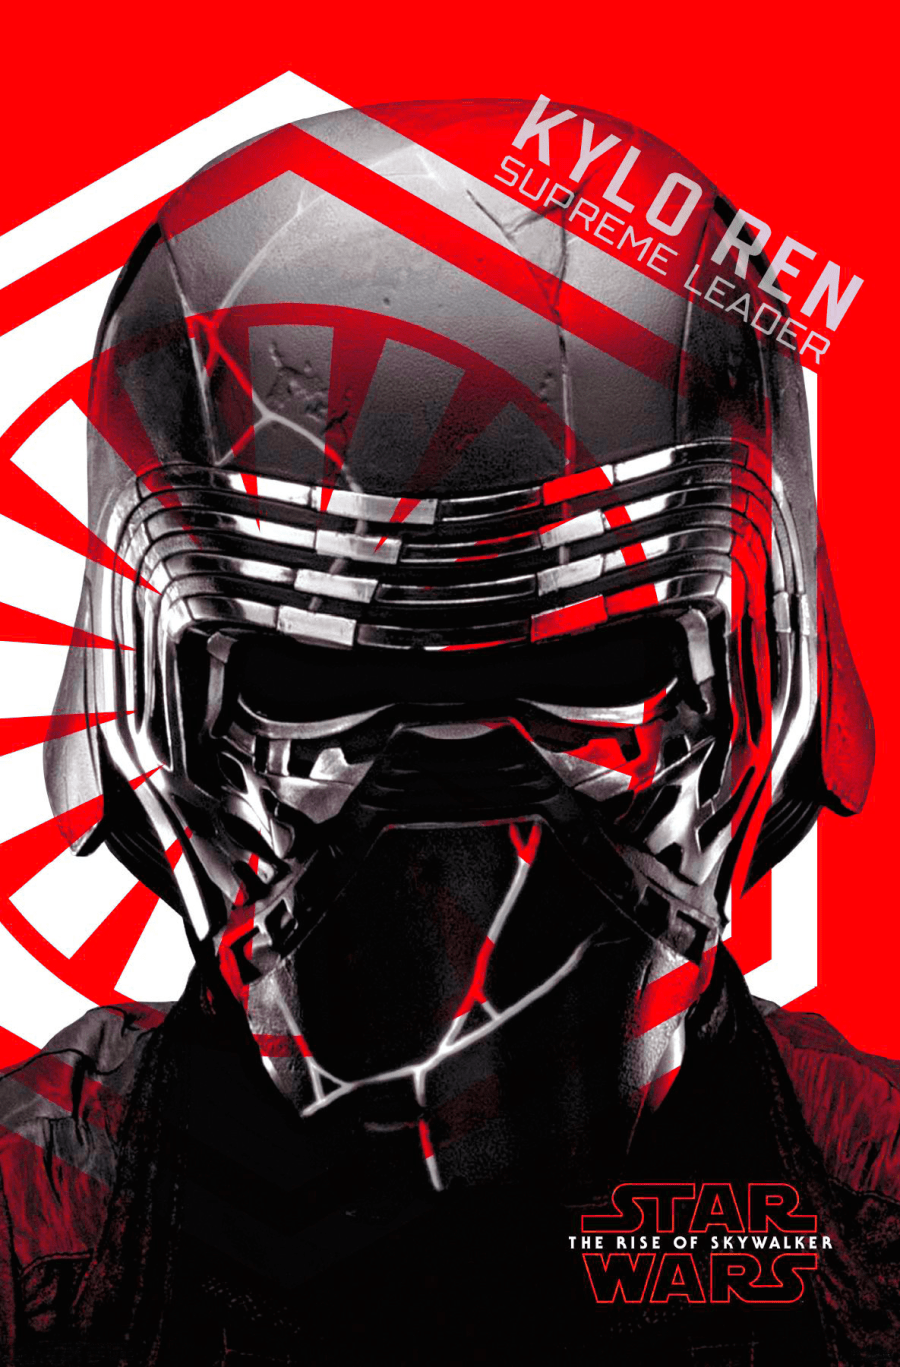 Kylo Ren The Rise of Skywalker Character Poster Edit